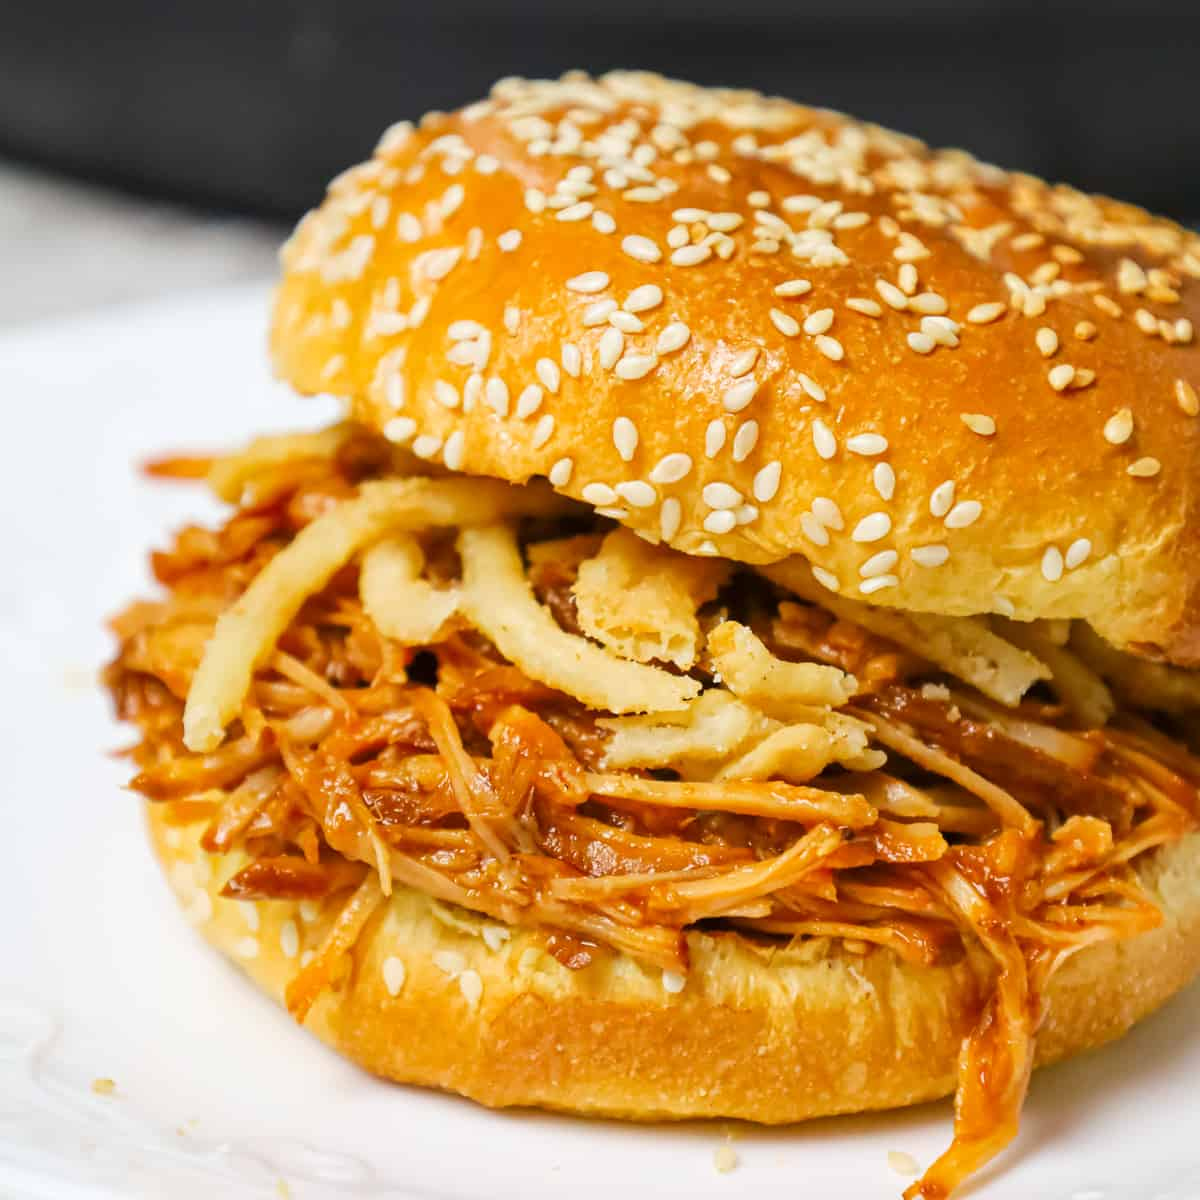 Instant Pot Pulled Pork is an easy and delicious dinner made with a boneless pork roast pressure cooked in apple juice and BBQ sauce.